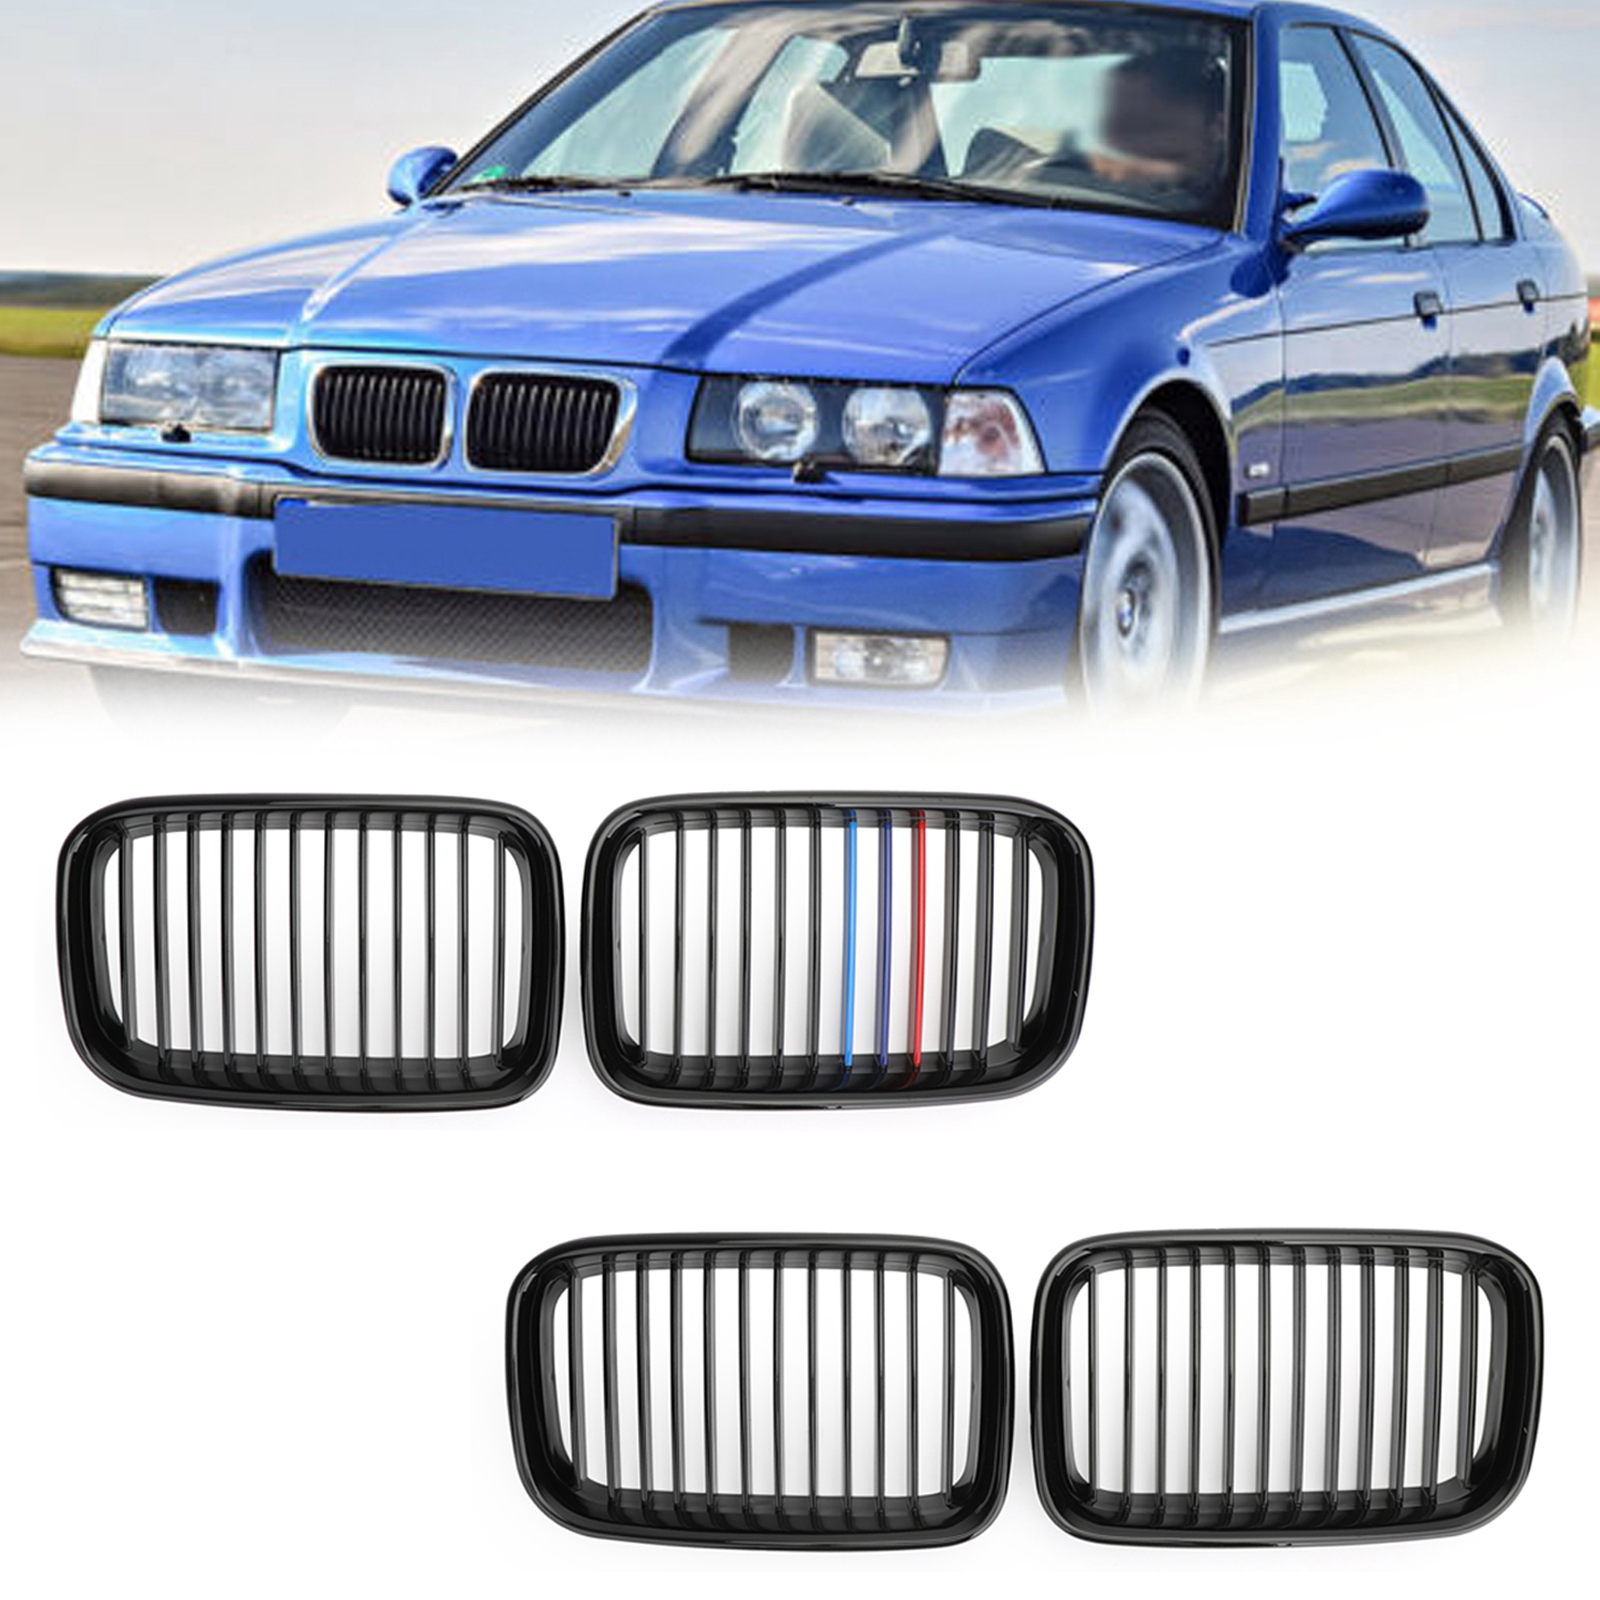 Areyourshop New Black Front Hood Kidney Sport Grills For BMW 3 Series E36 1992-1996 Front Upper Grille Car Auto Accessories